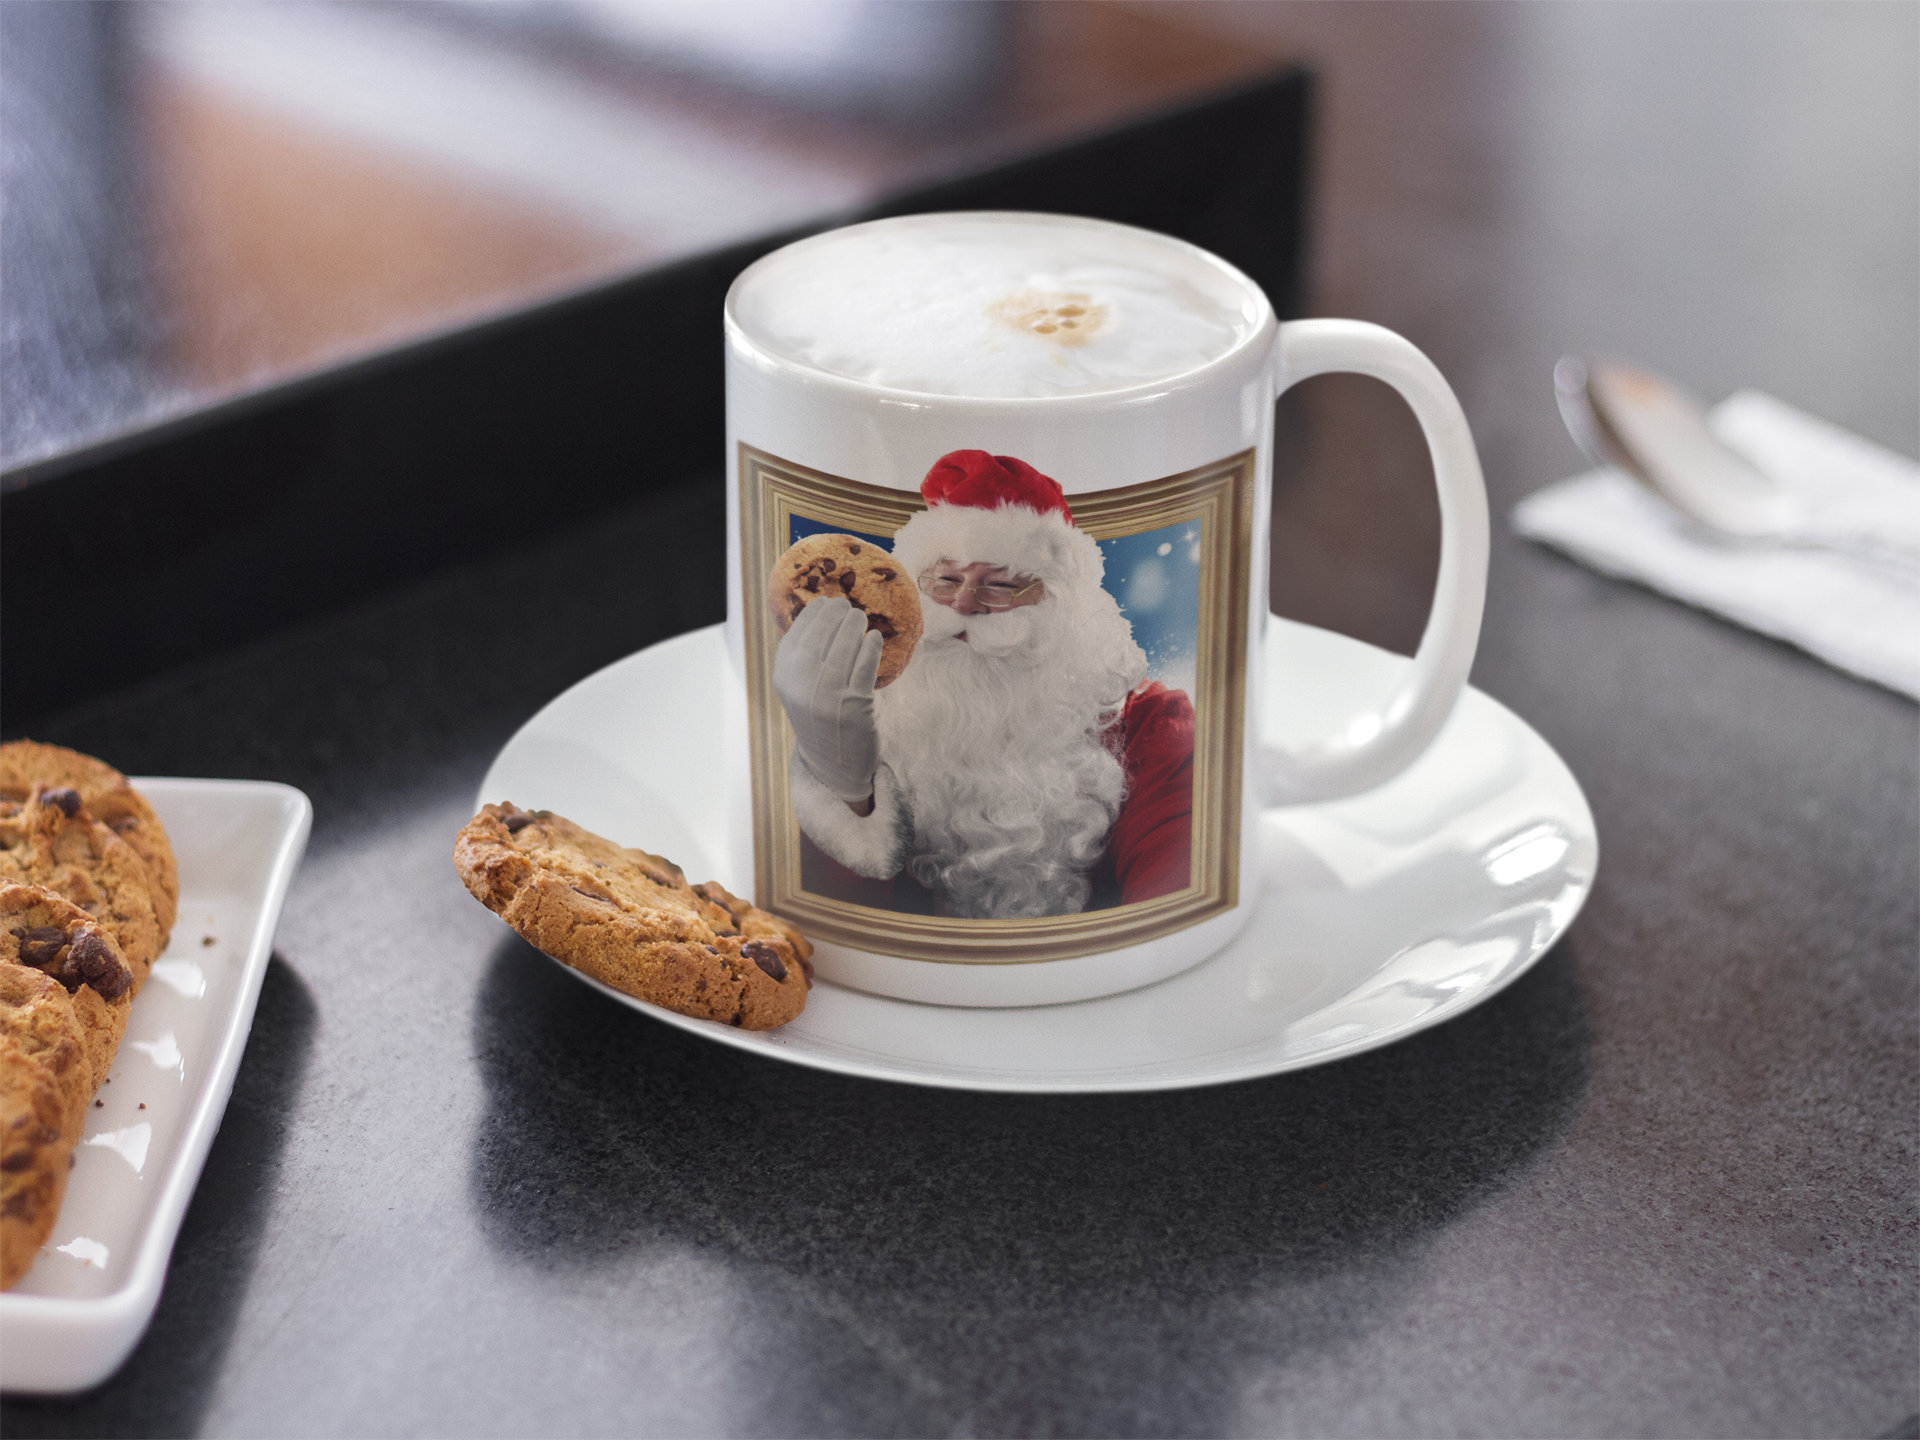 Santa Claus Mug Christmas Cookie Coffee Cup Holiday Decor Mikemburkedesigns